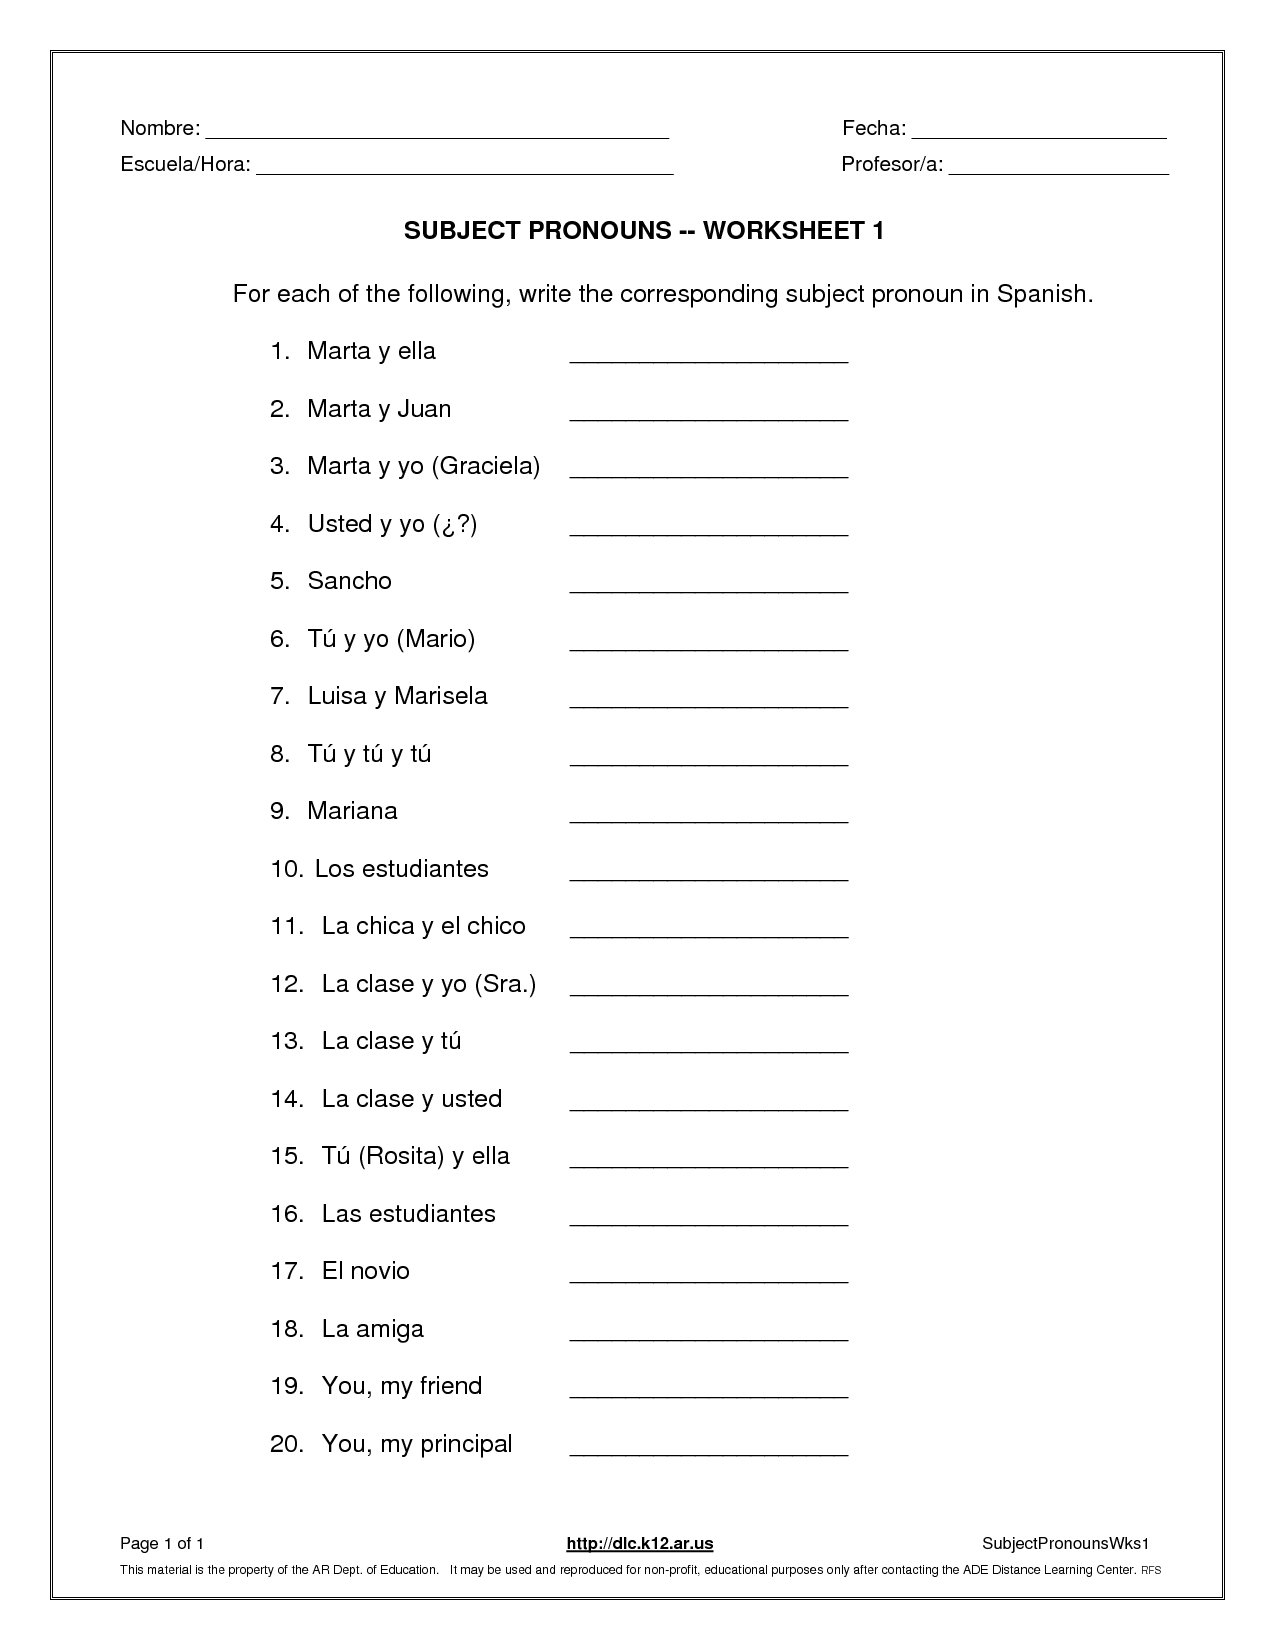 Subject And Object Pronouns Worksheet Subject Pronouns Worksheet 1 Together With Double Object Pronouns Spanish Worksheet